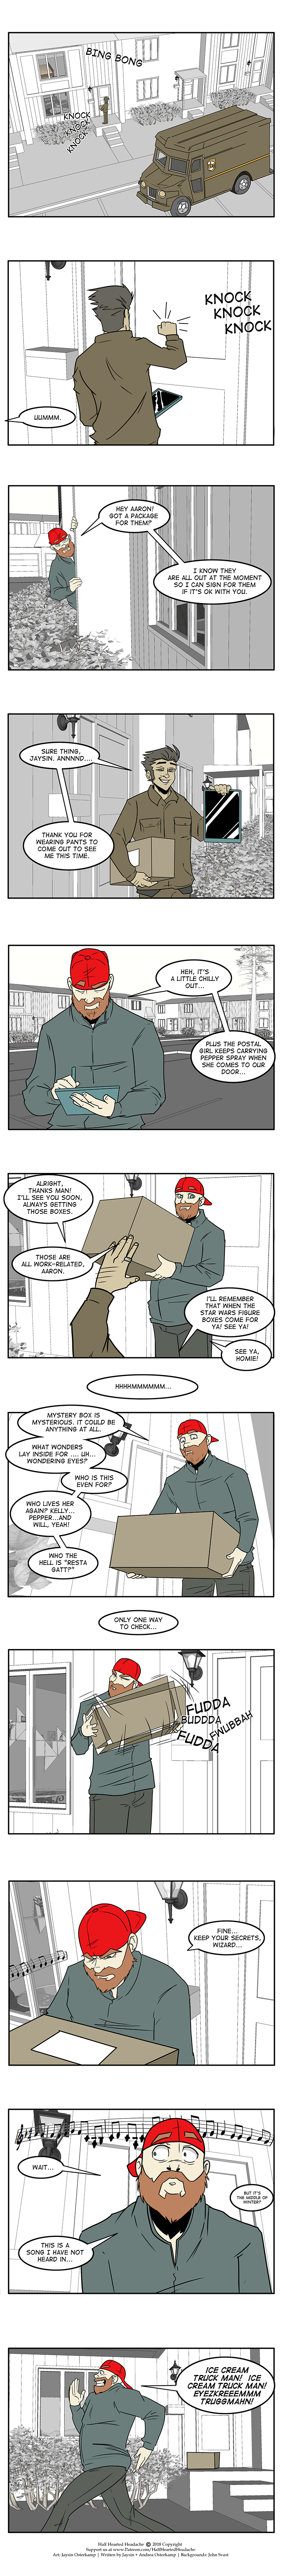 639 – Signing for the Package